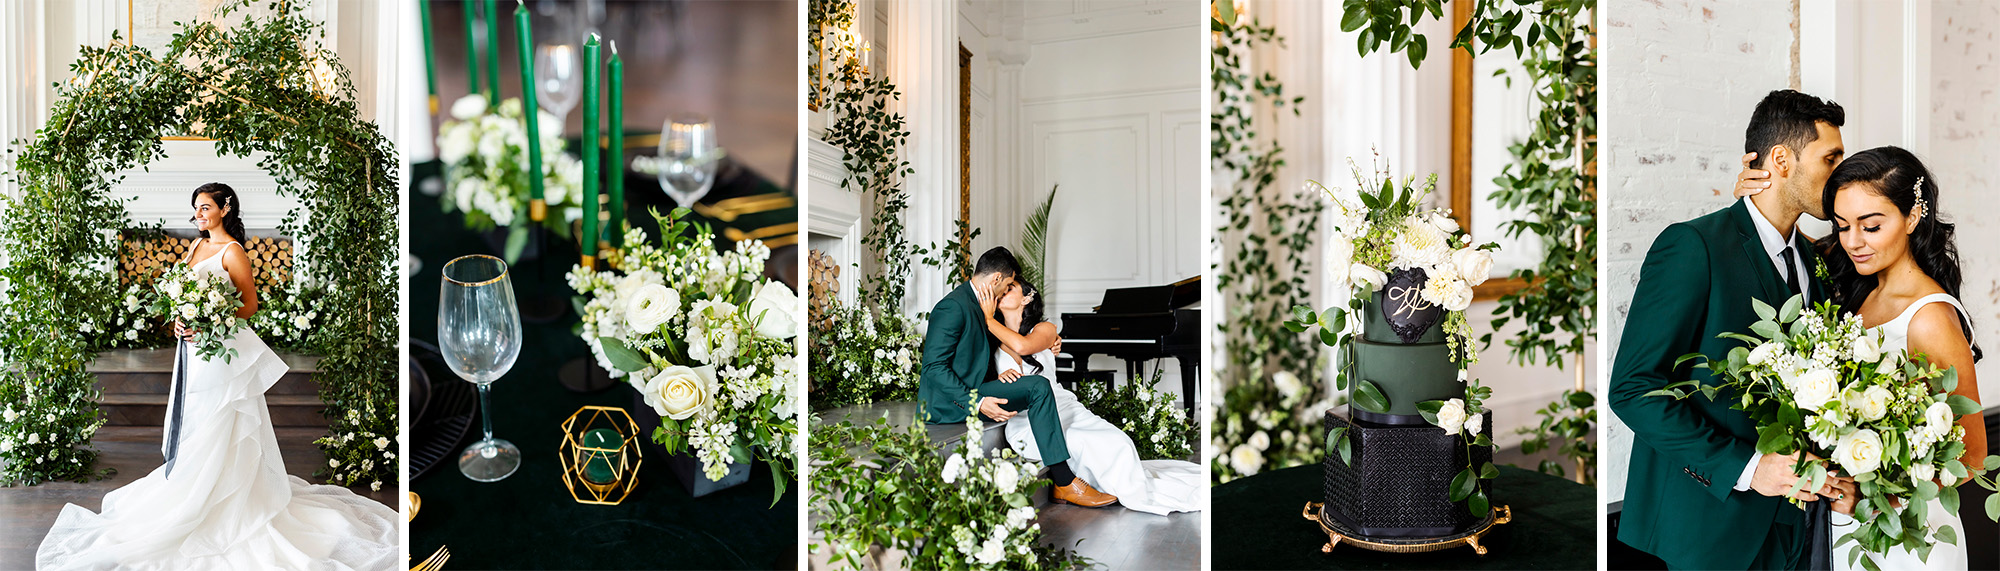 Emerald Green Styled Shoot @ The Mason Dallas